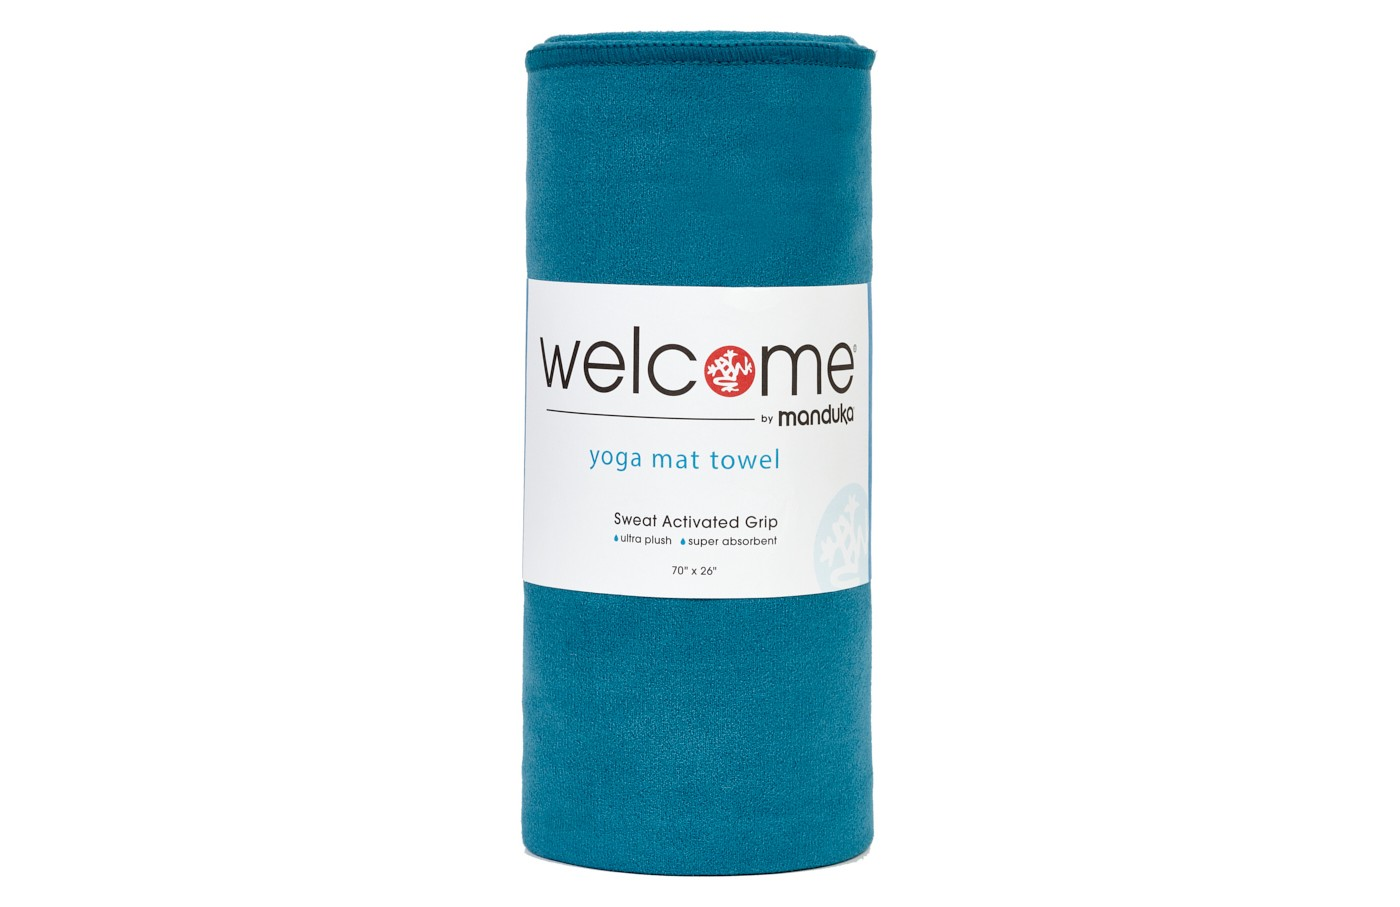 Manduka Welcome Yoga Mat Towel - Maldive - image 1 of 5